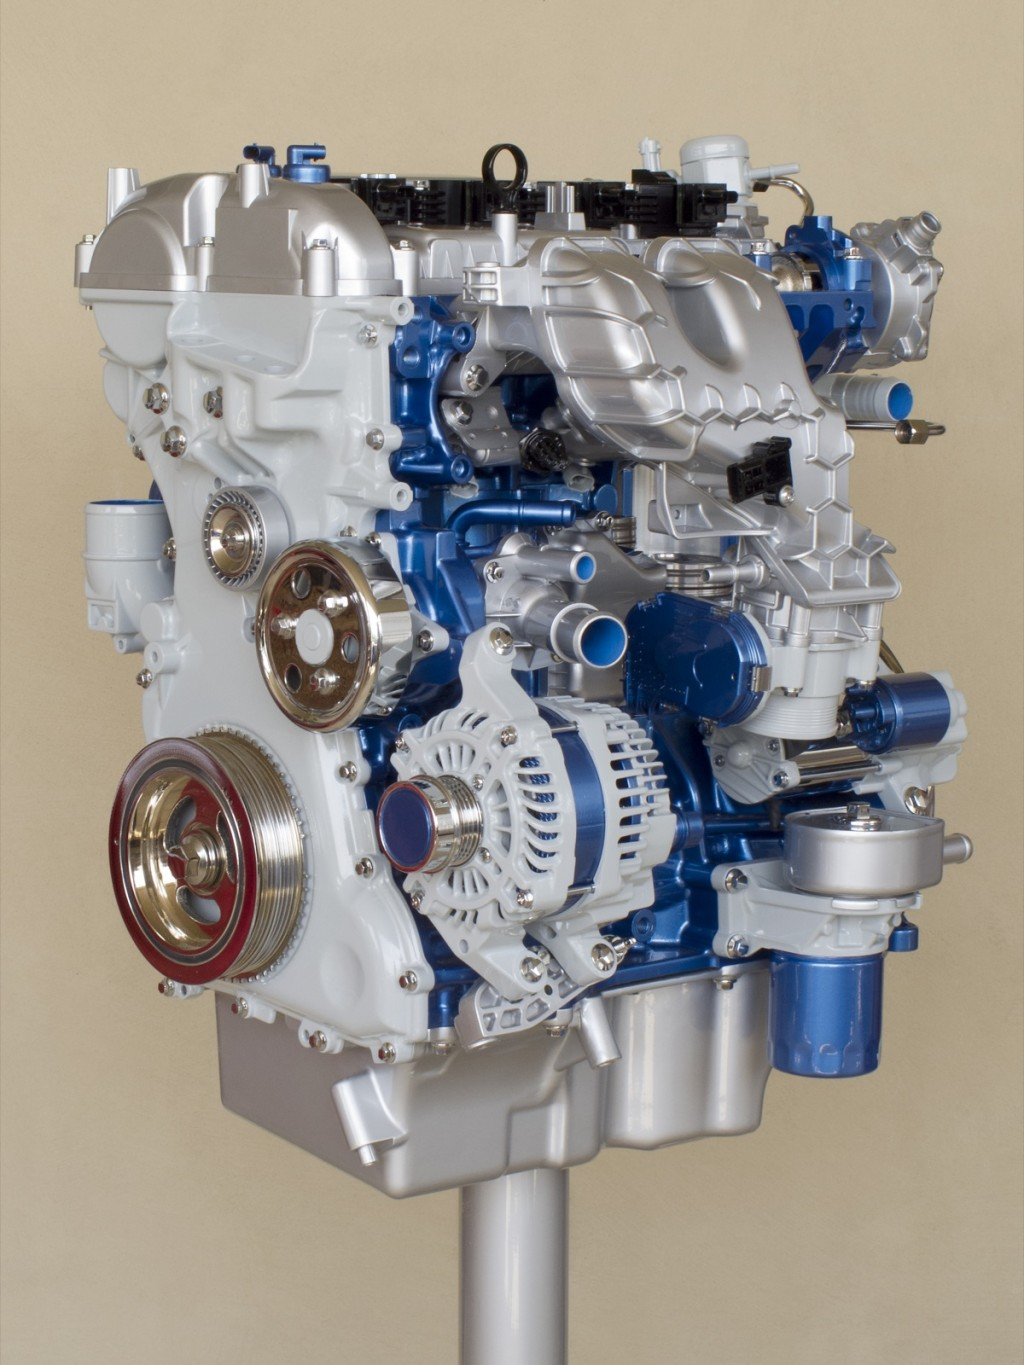 2013 Ford Focus ST  -  2.0T EcoBoost engine